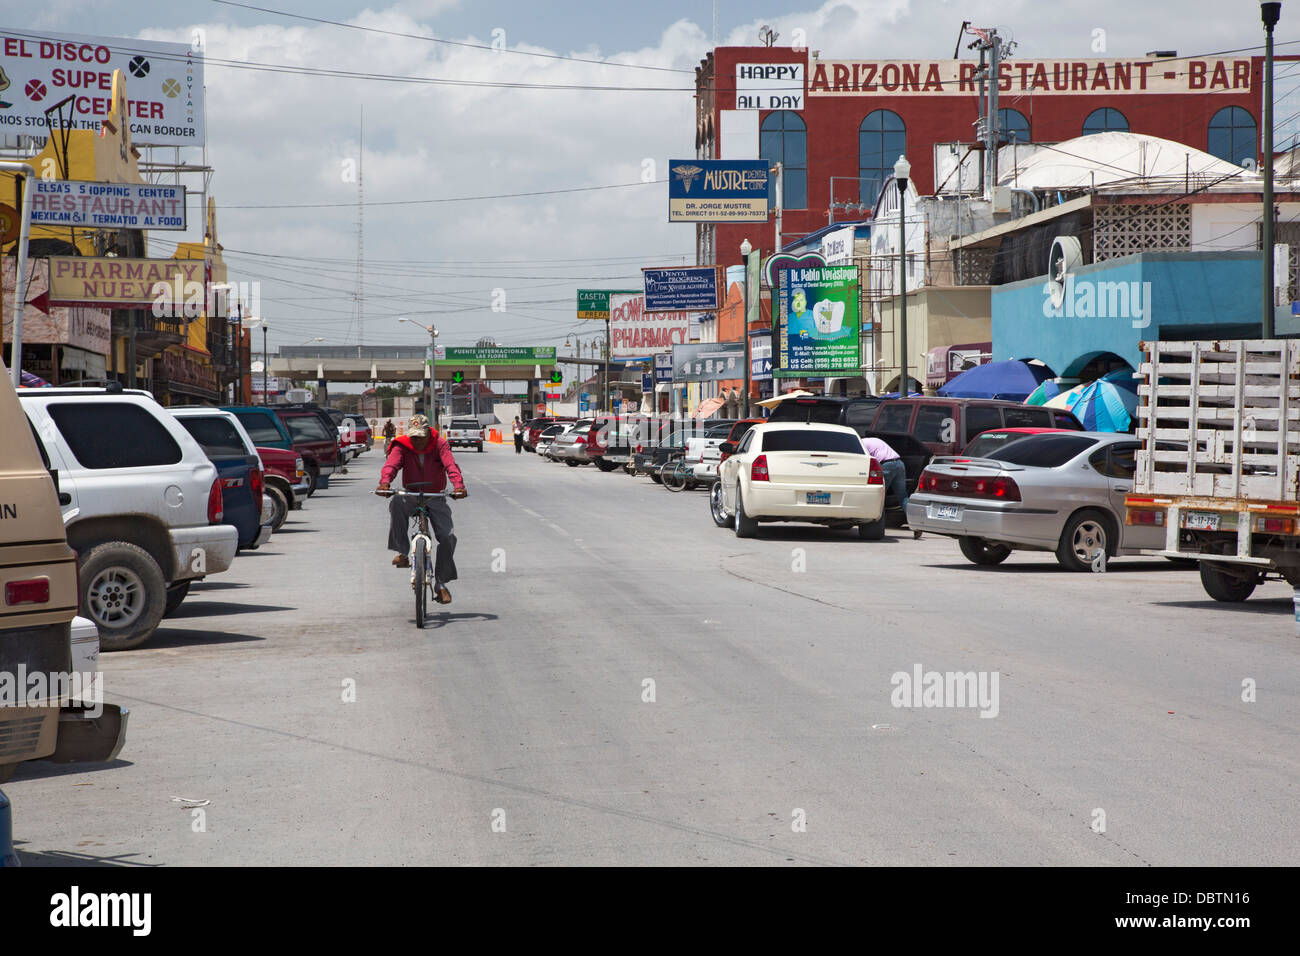 The main street of Nuevo Progreso, Mexico, which is lined with shops